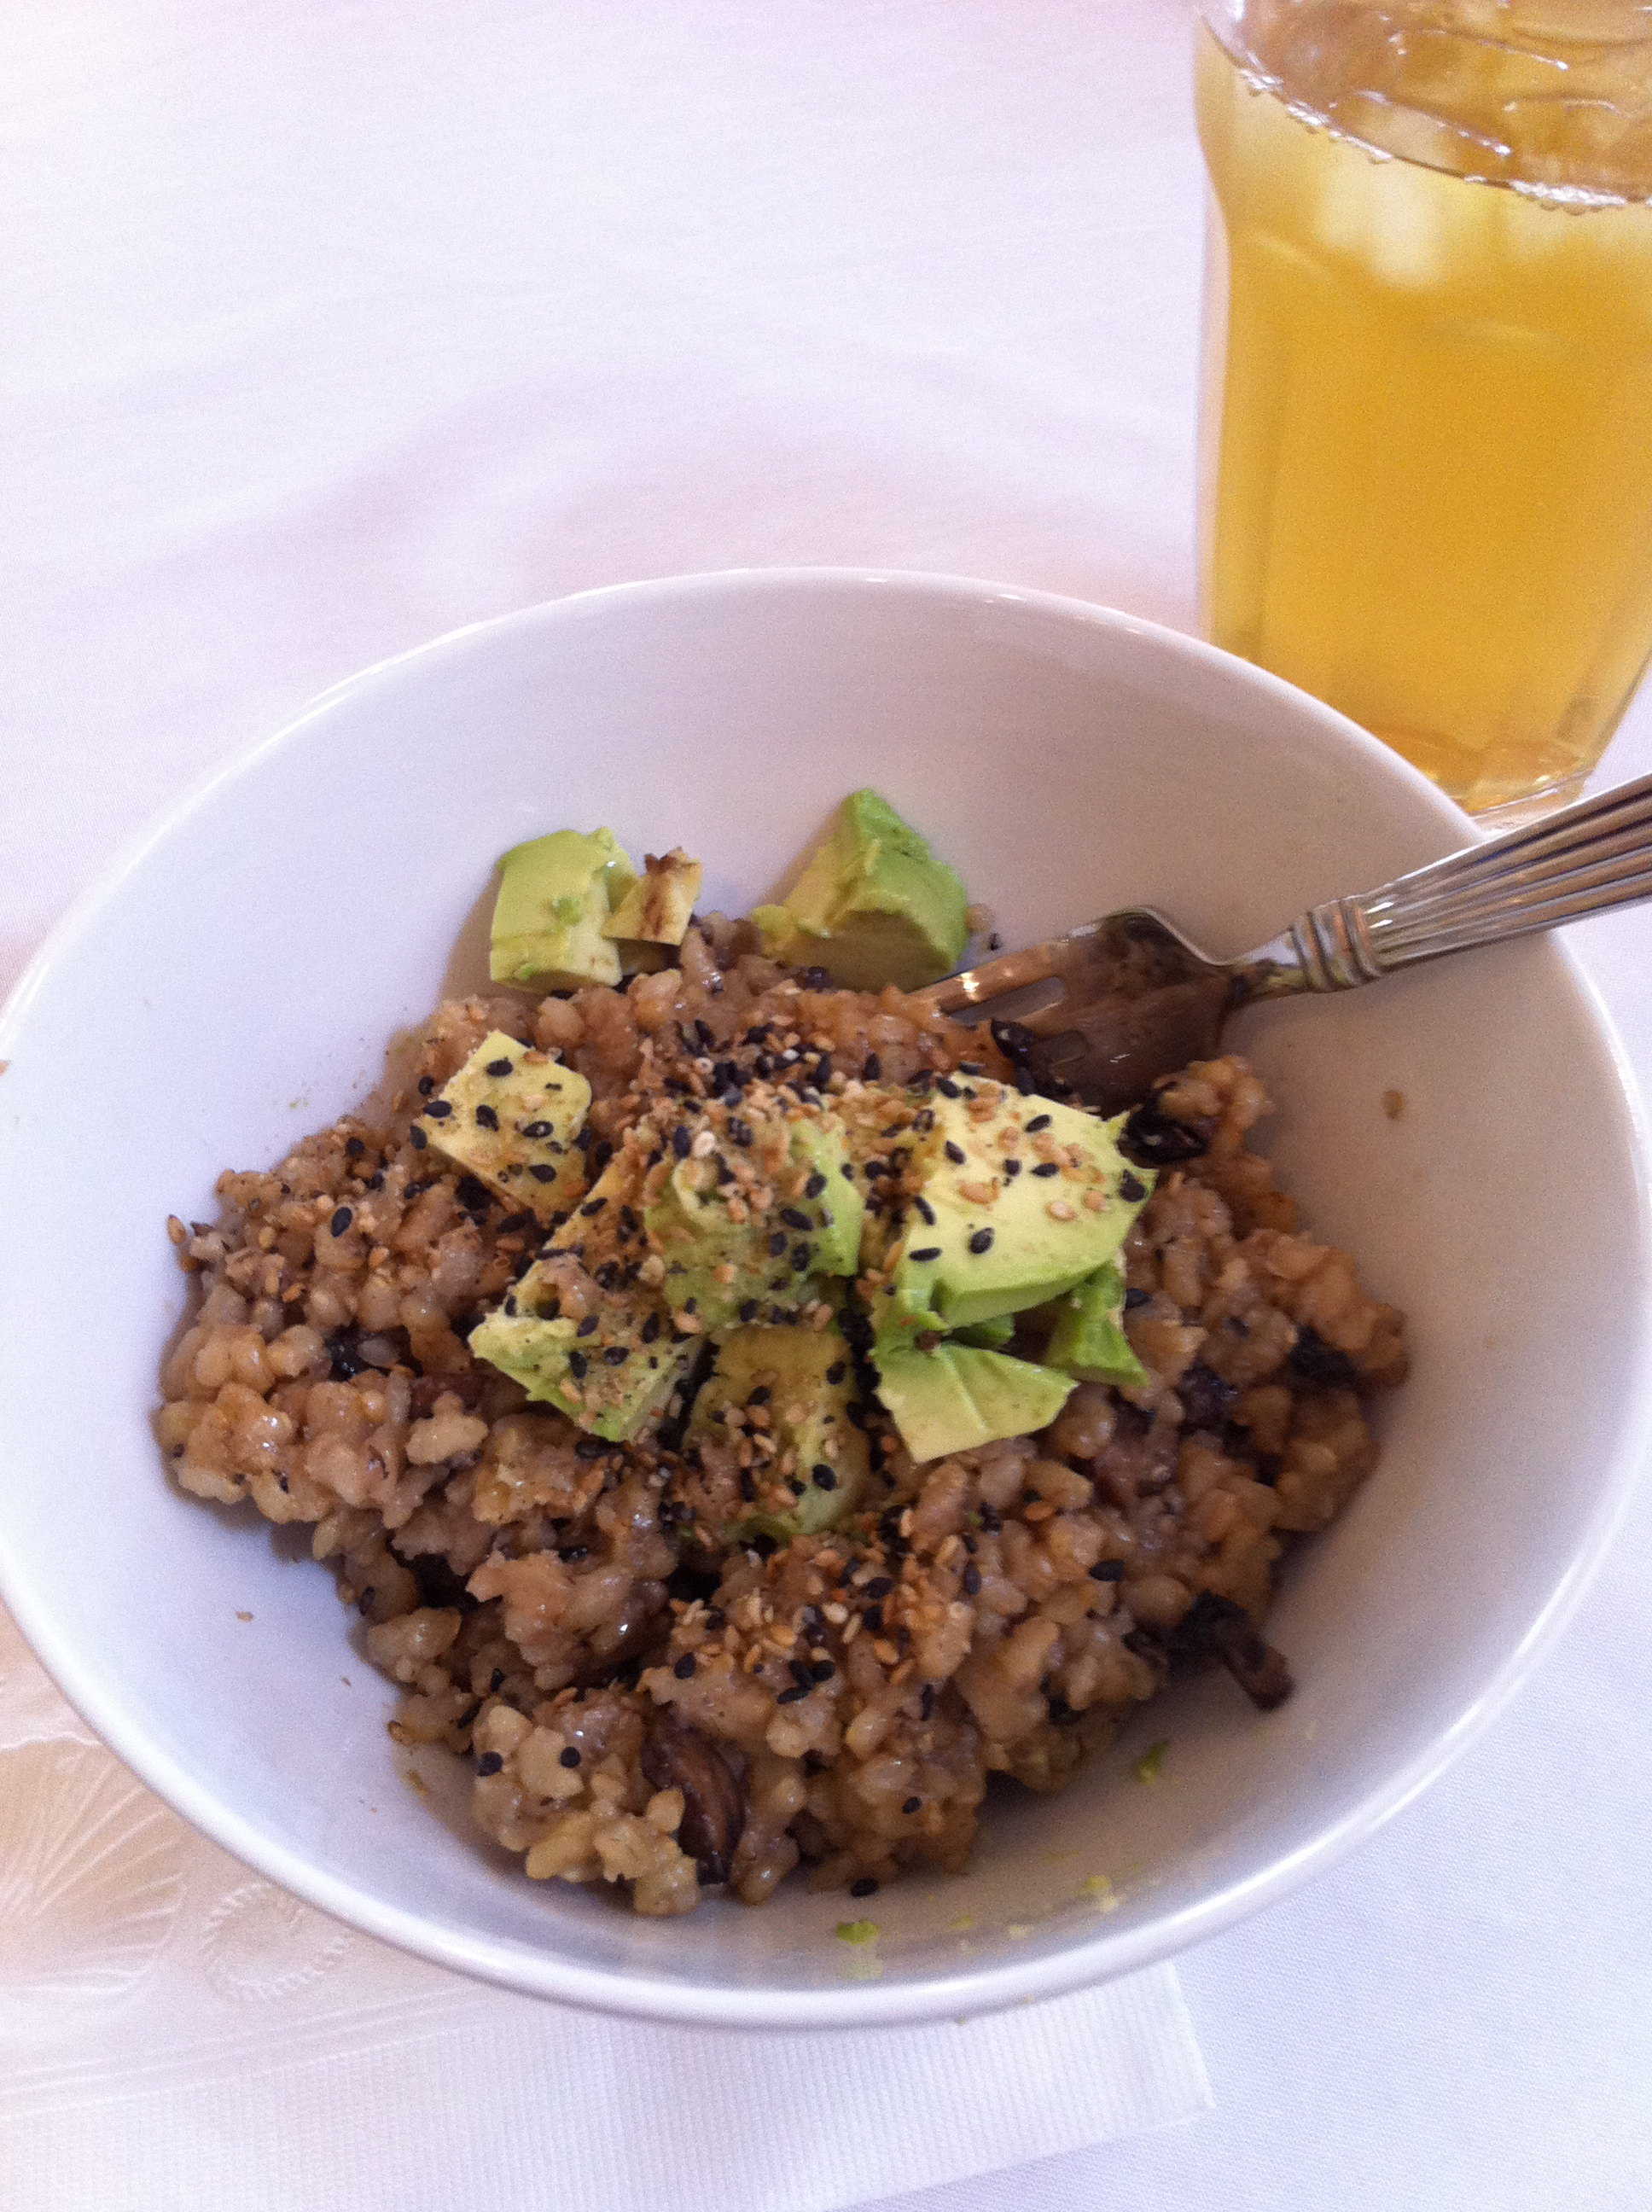 Fried brown rice and gomasio make a fantabulous vegan lunch.